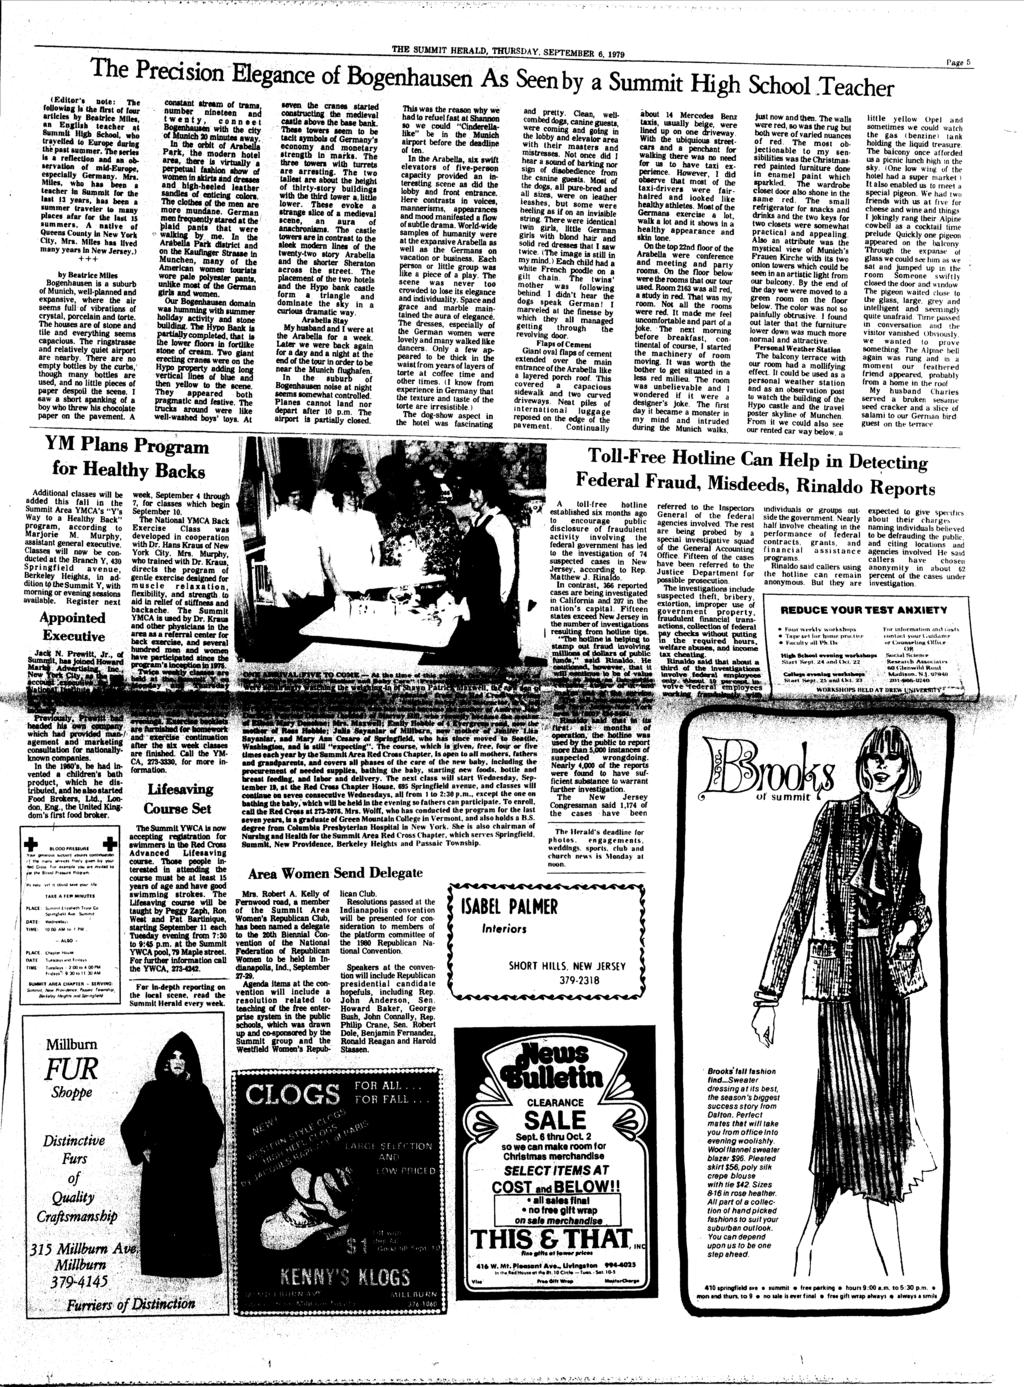 itma. THE SUMMT HERALD, THURSDAY, SEPTEMBER 6, 1979 The Precision Elegance of Bogenhausen As Seen by a Summit High School Teacher (Editor'* note: The following it the first of four articles by